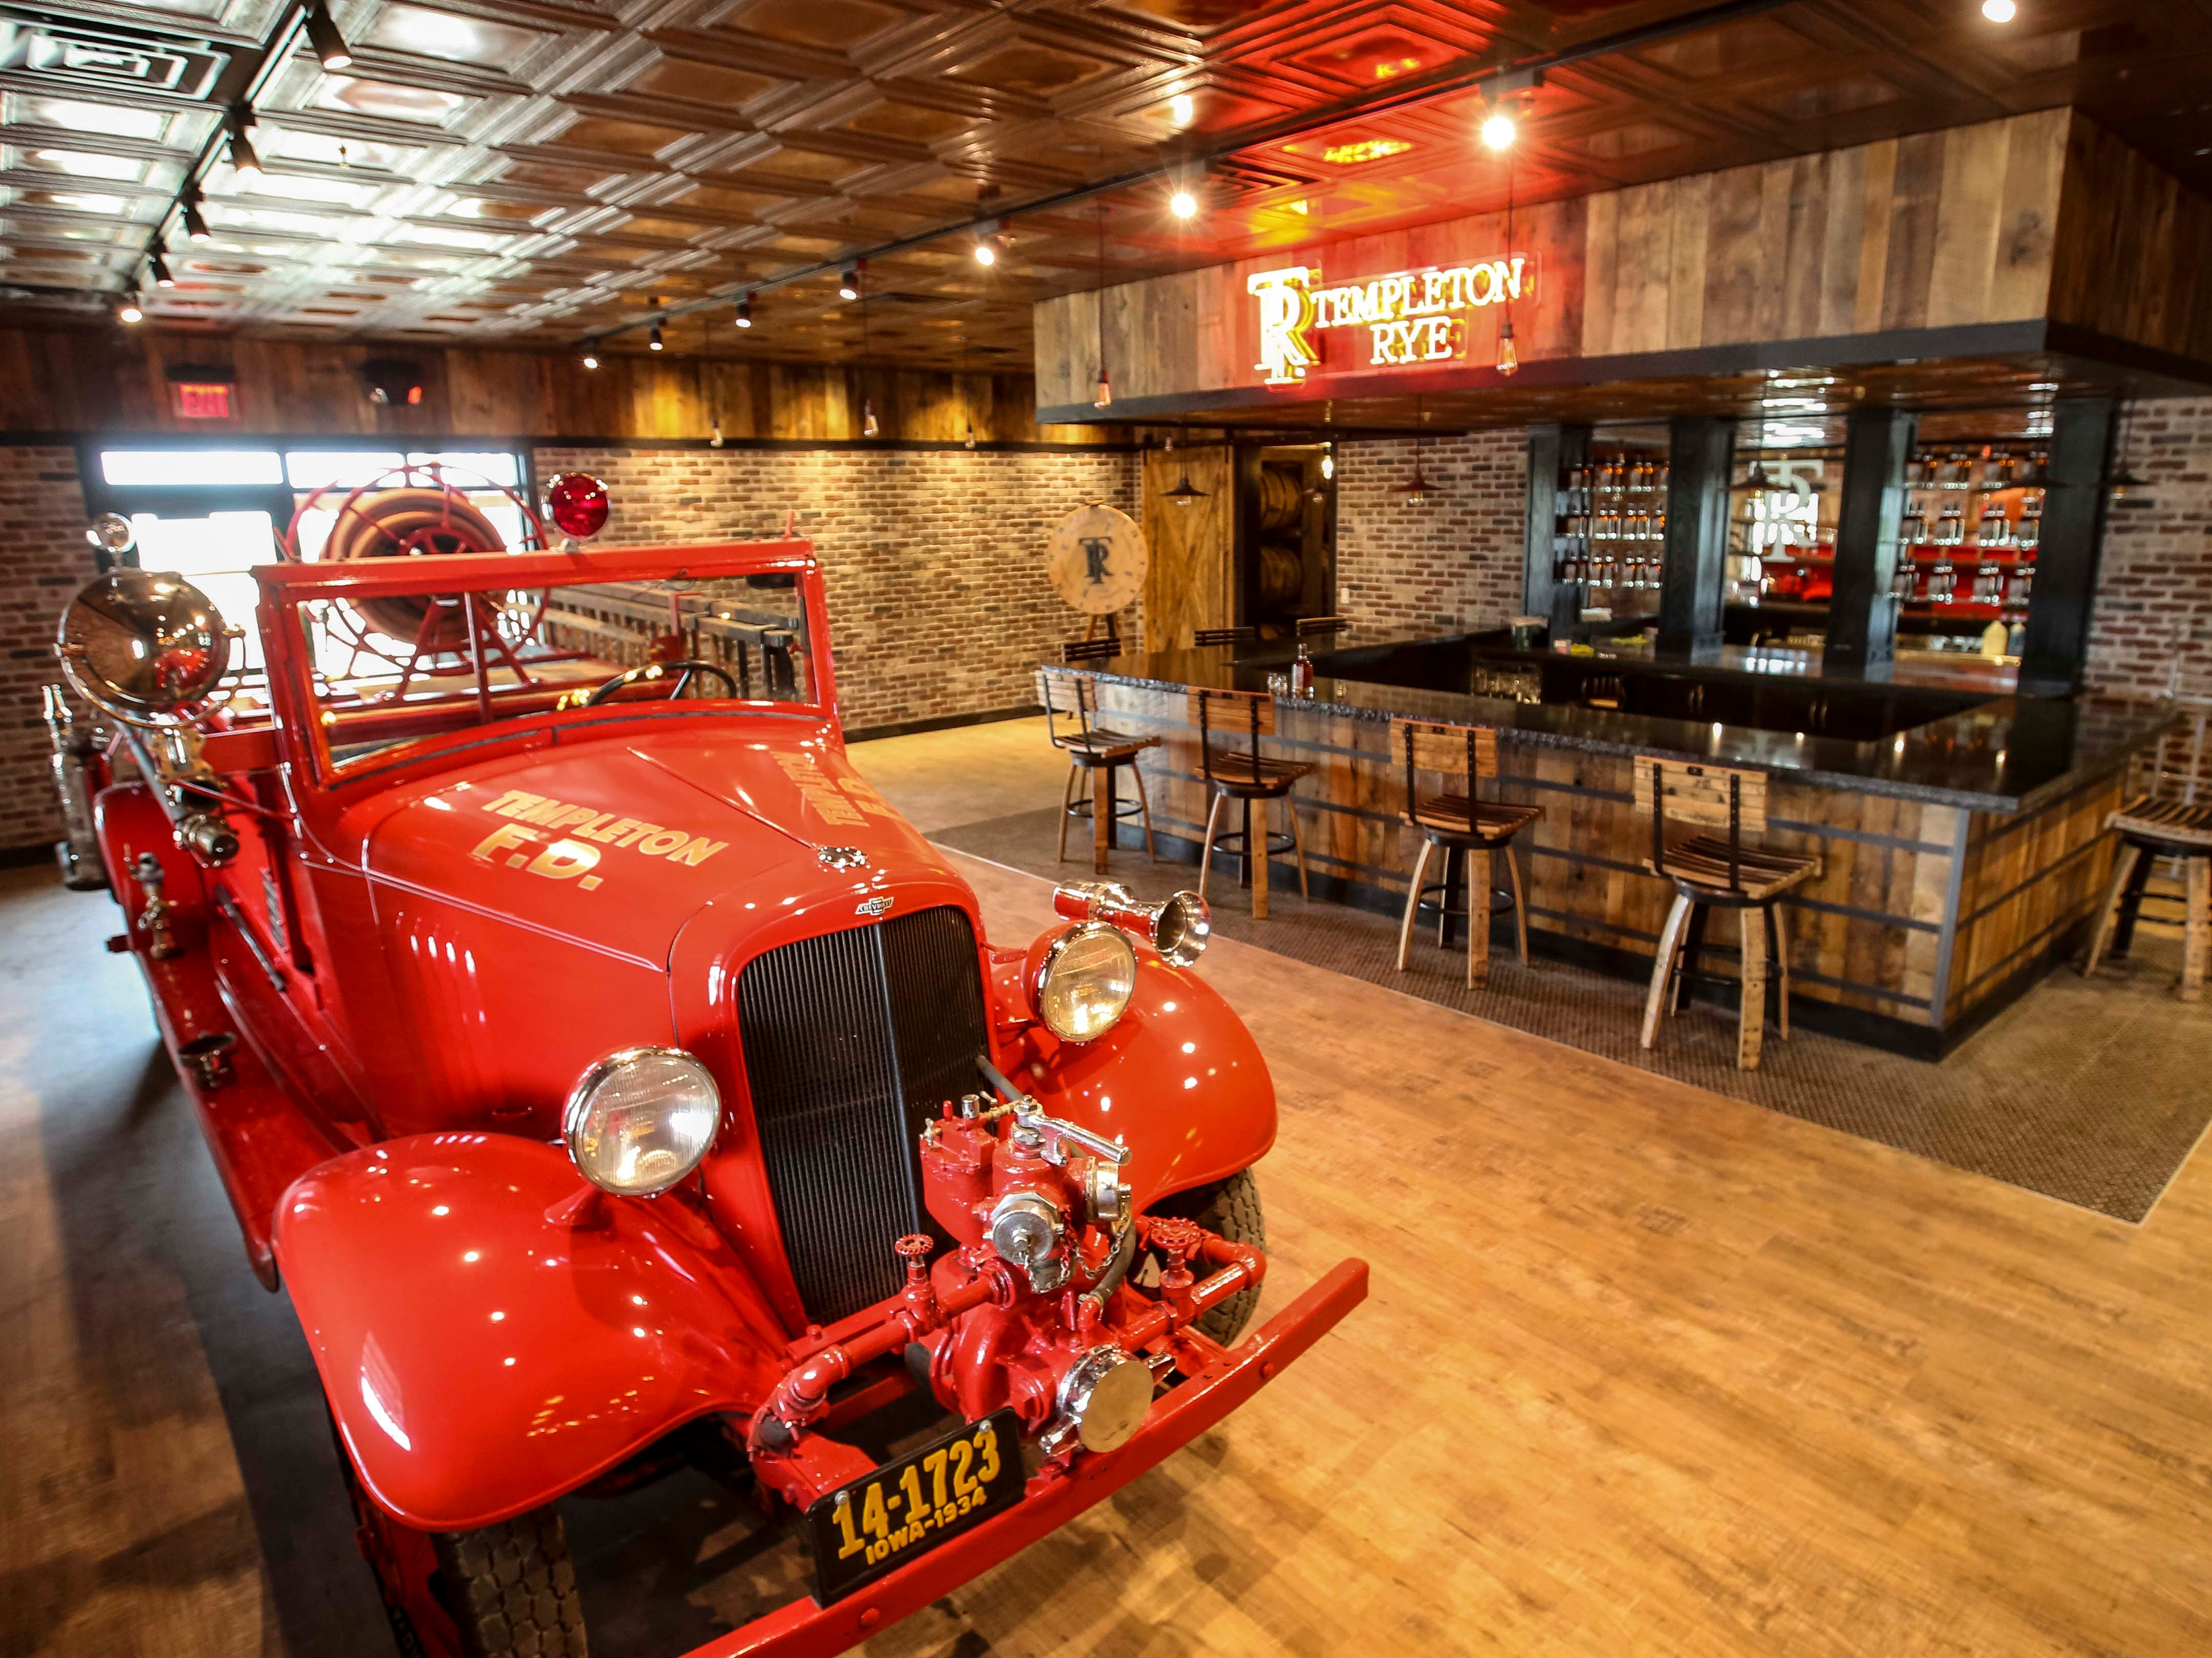 Sampling bar for Templeton Rye in their new $35 million distillery in Templeton, Iowa, shown here Monday, Aug. 6, 2018, featuring a museum and visitor's center.